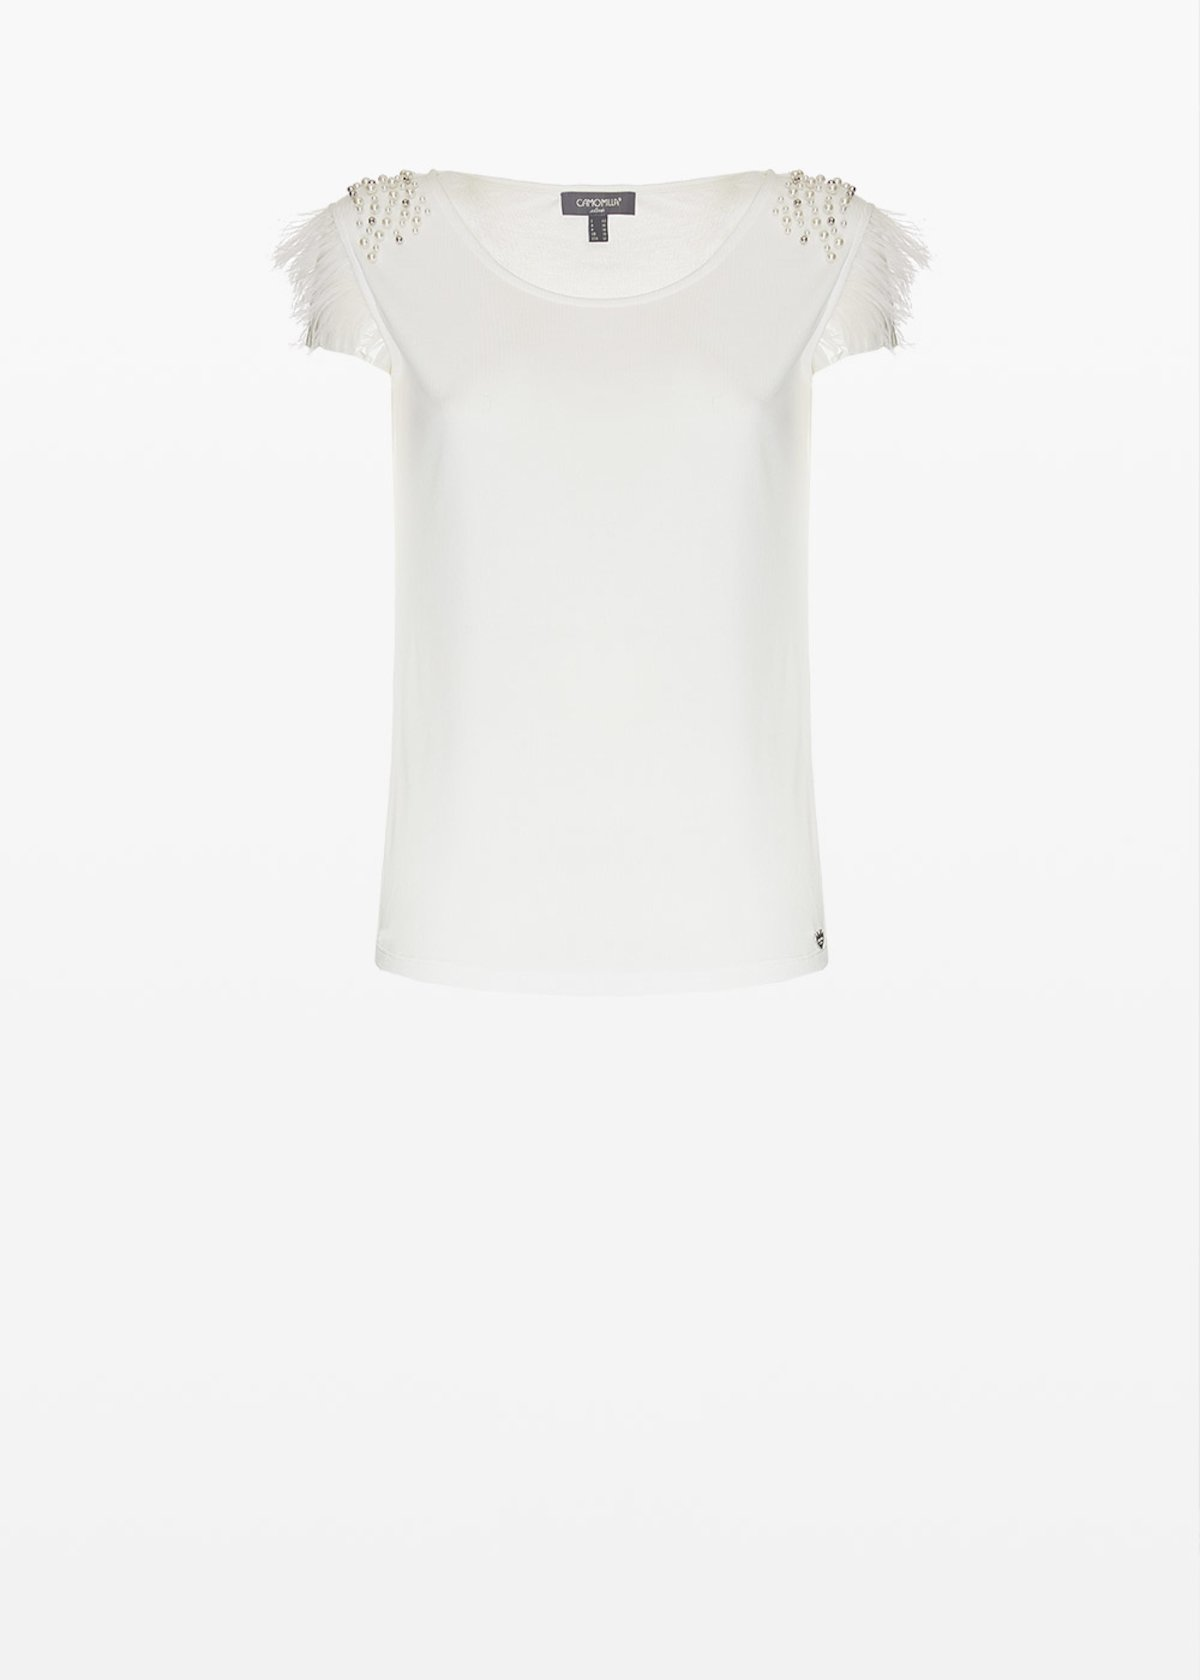 Tamir jersey top with pearls and feathers detail